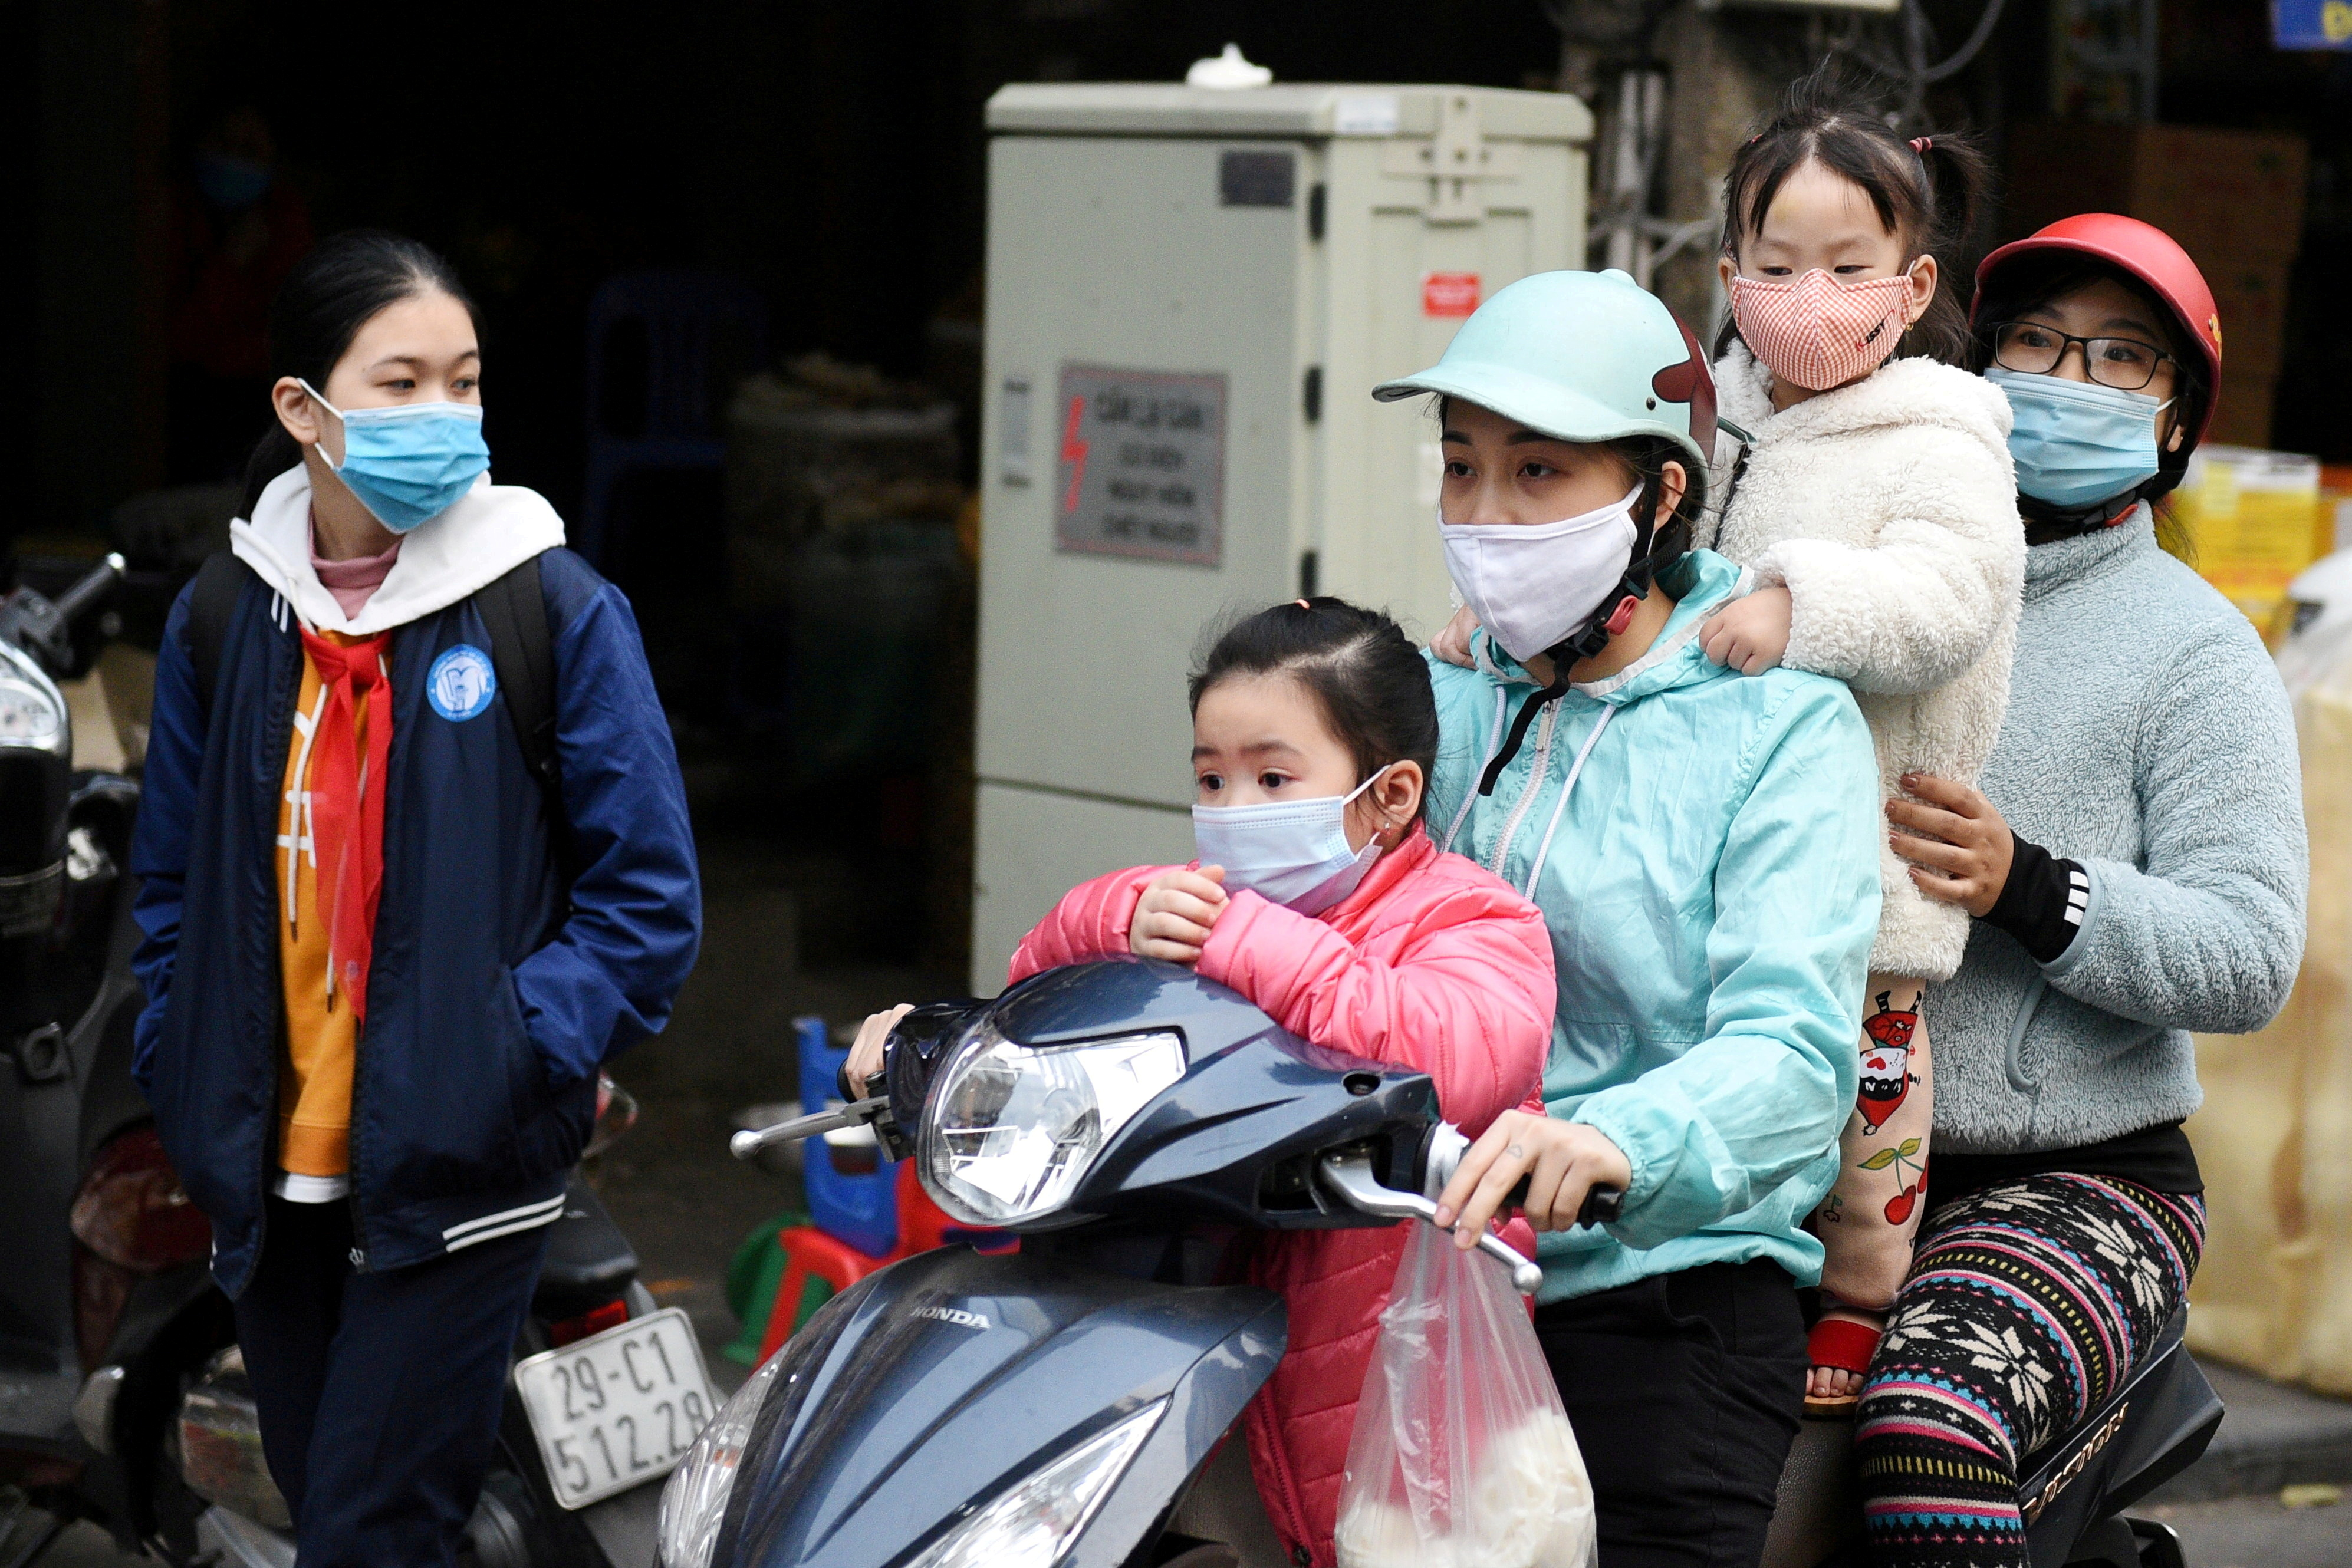 A family wears protective masks as they ride a motorbike in the street amid the coronavirus disease (COVID-19) outbreak in Hanoi, Vietnam, January 29, 2021. REUTERS/Thanh Hue/File Photo/File Photo